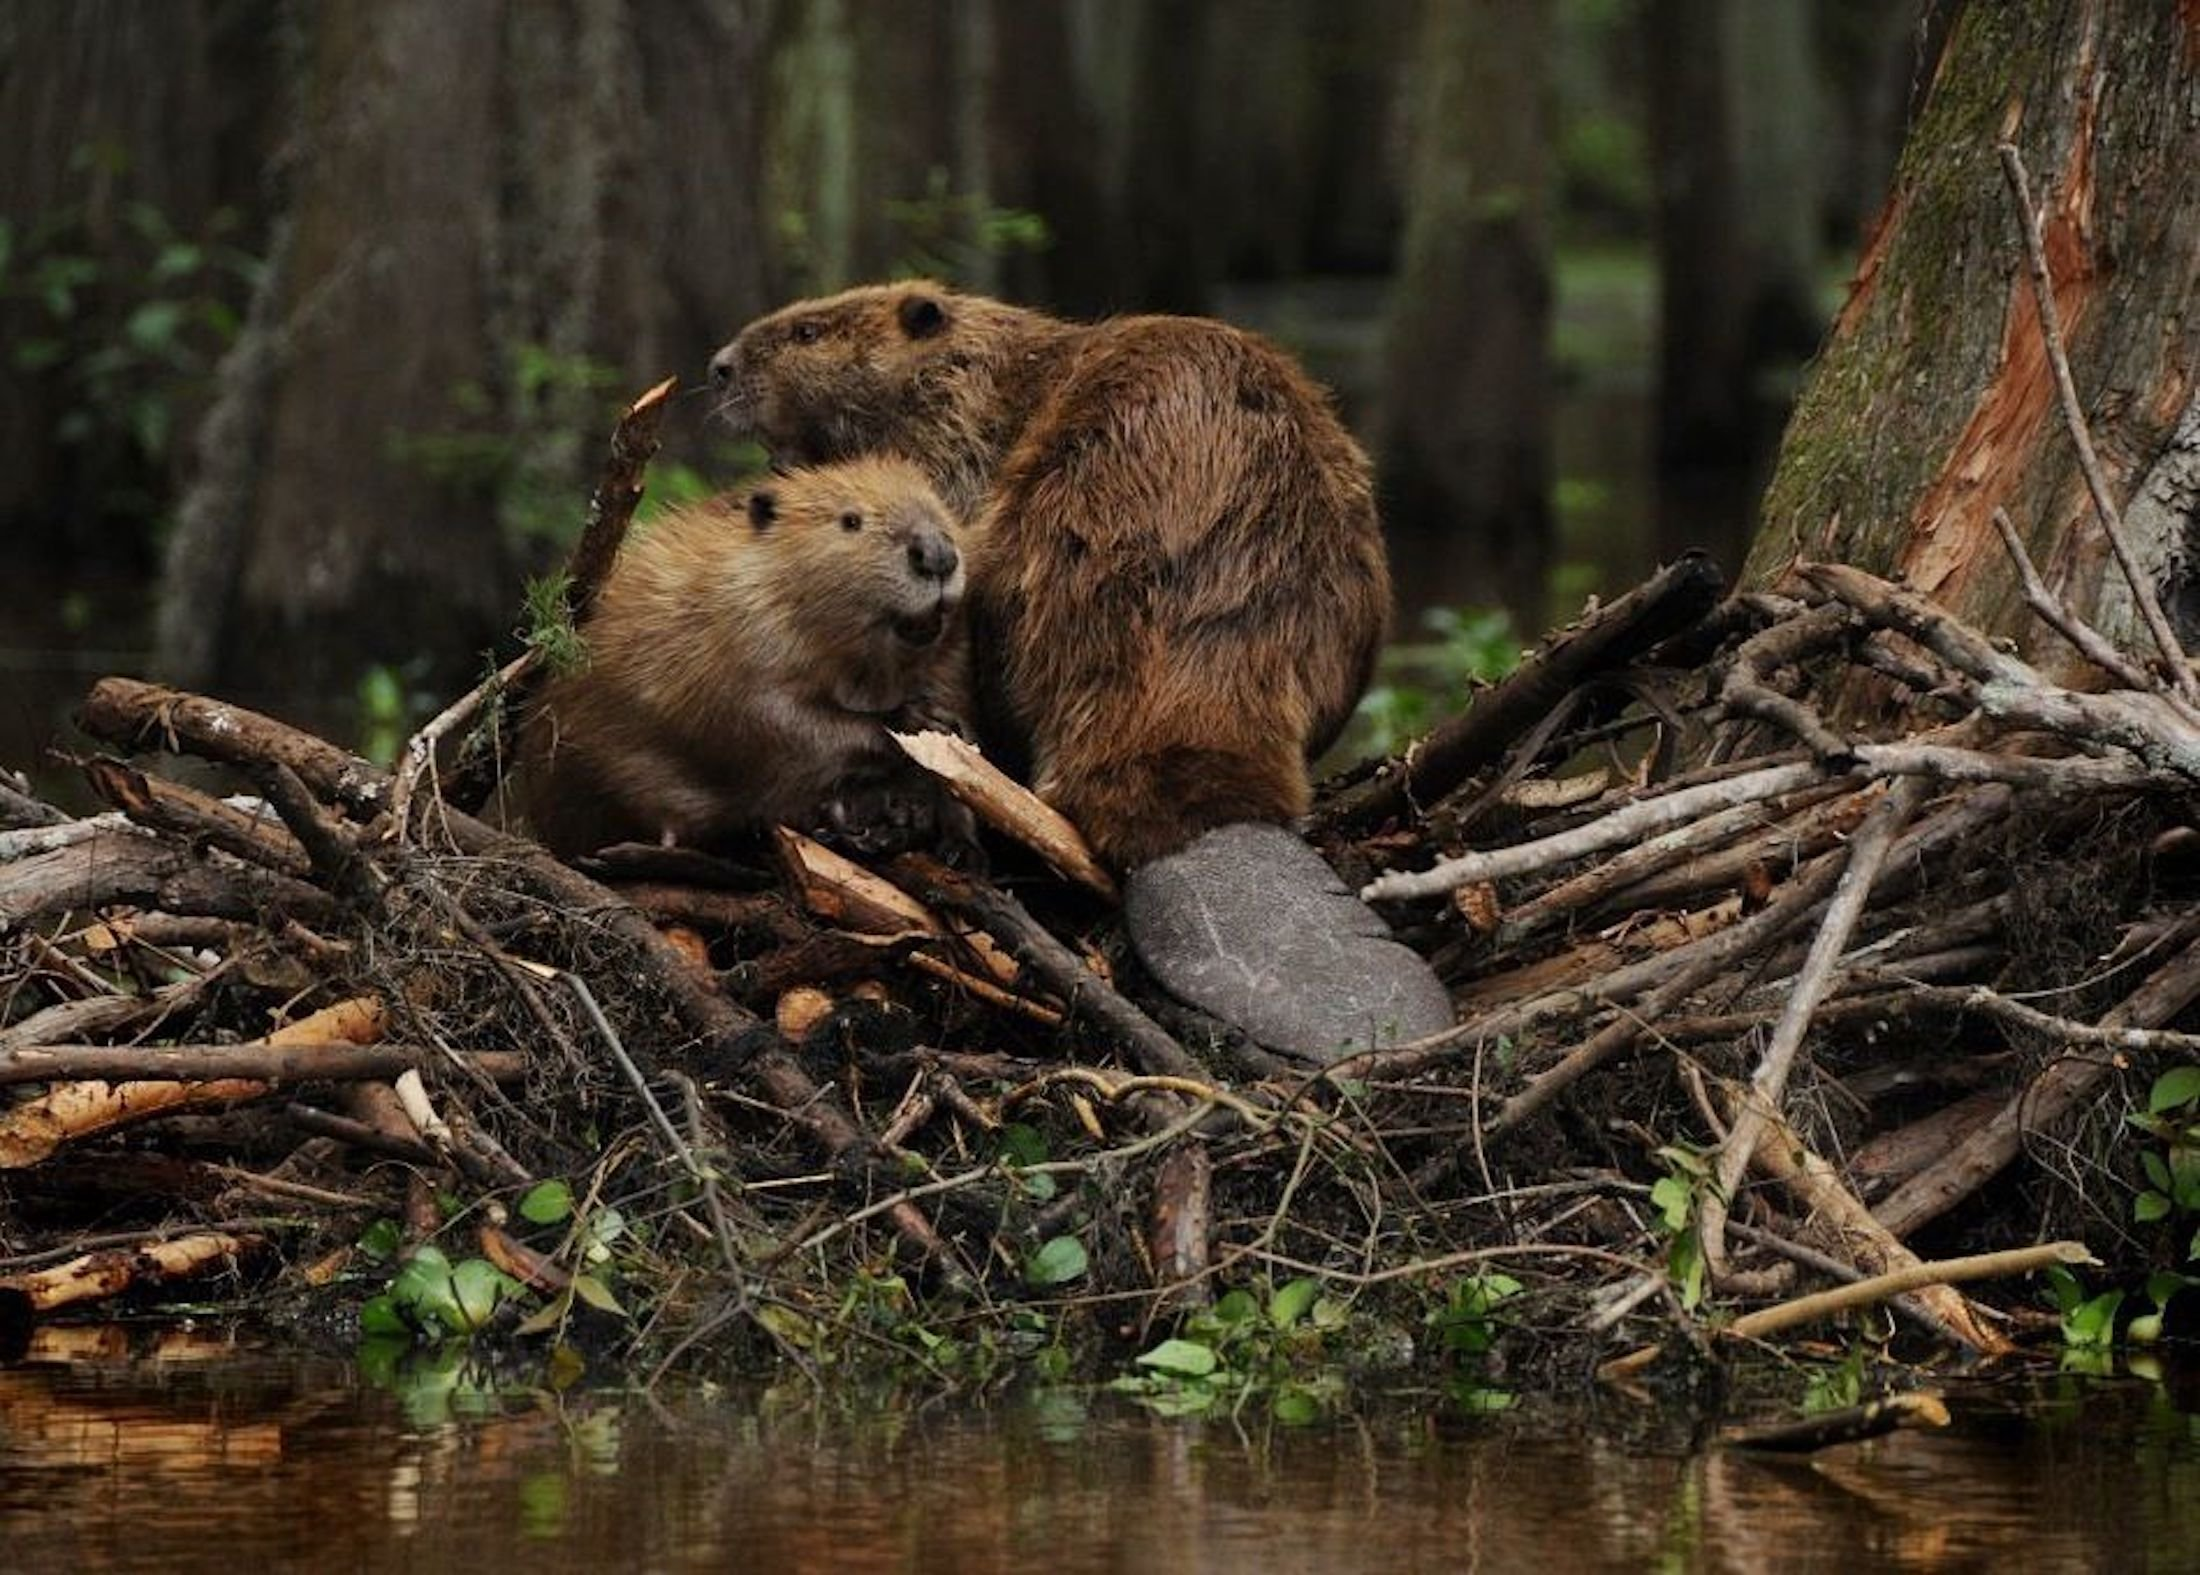 Beaver mother and baby on Lodge by Animal Facts Encyclopedia